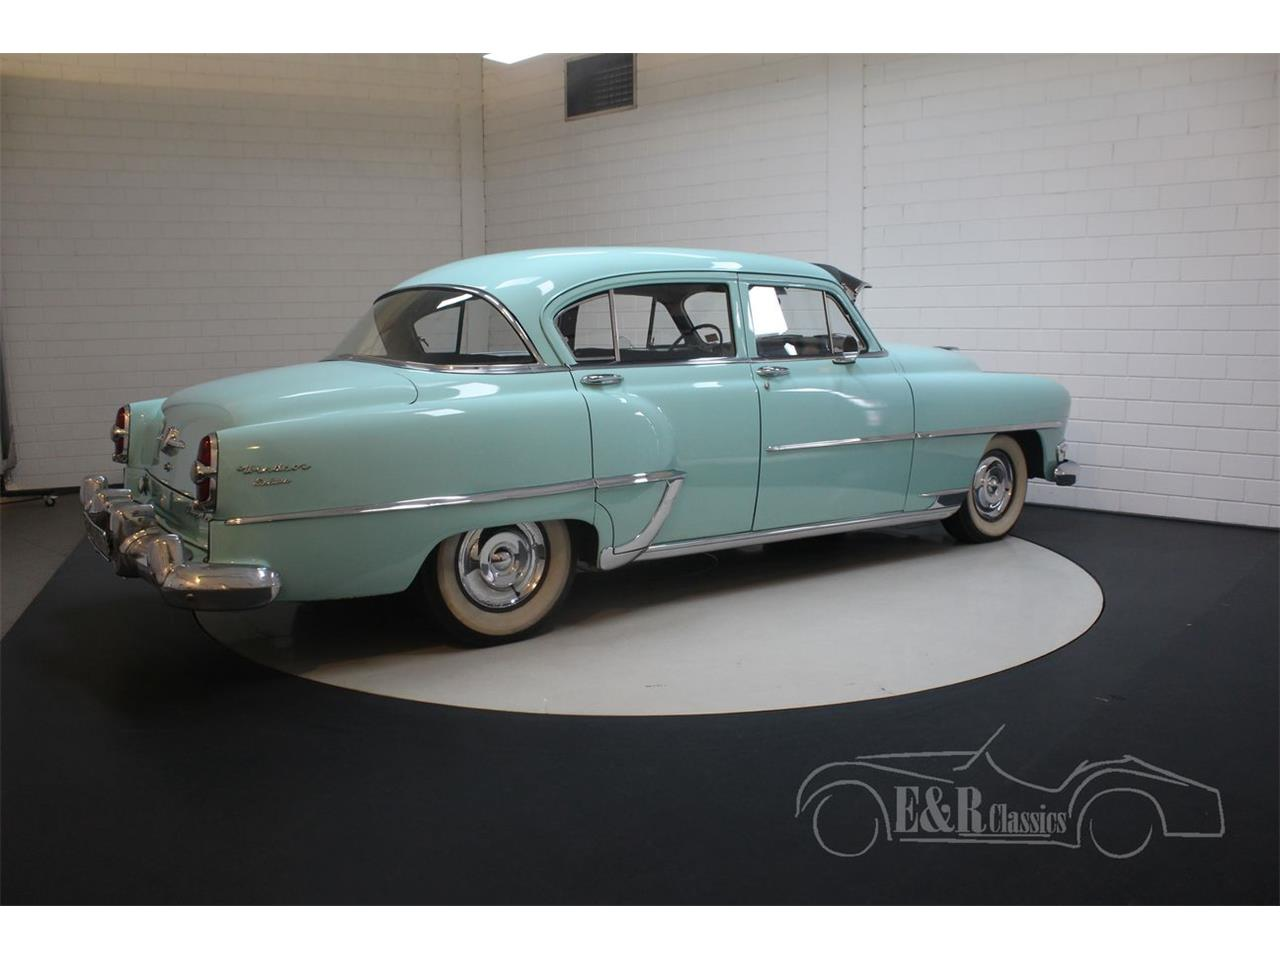 Large Picture of Classic 1954 Chrysler Windsor located in noord brabant - $19,000.00 Offered by E & R Classics - QJZL